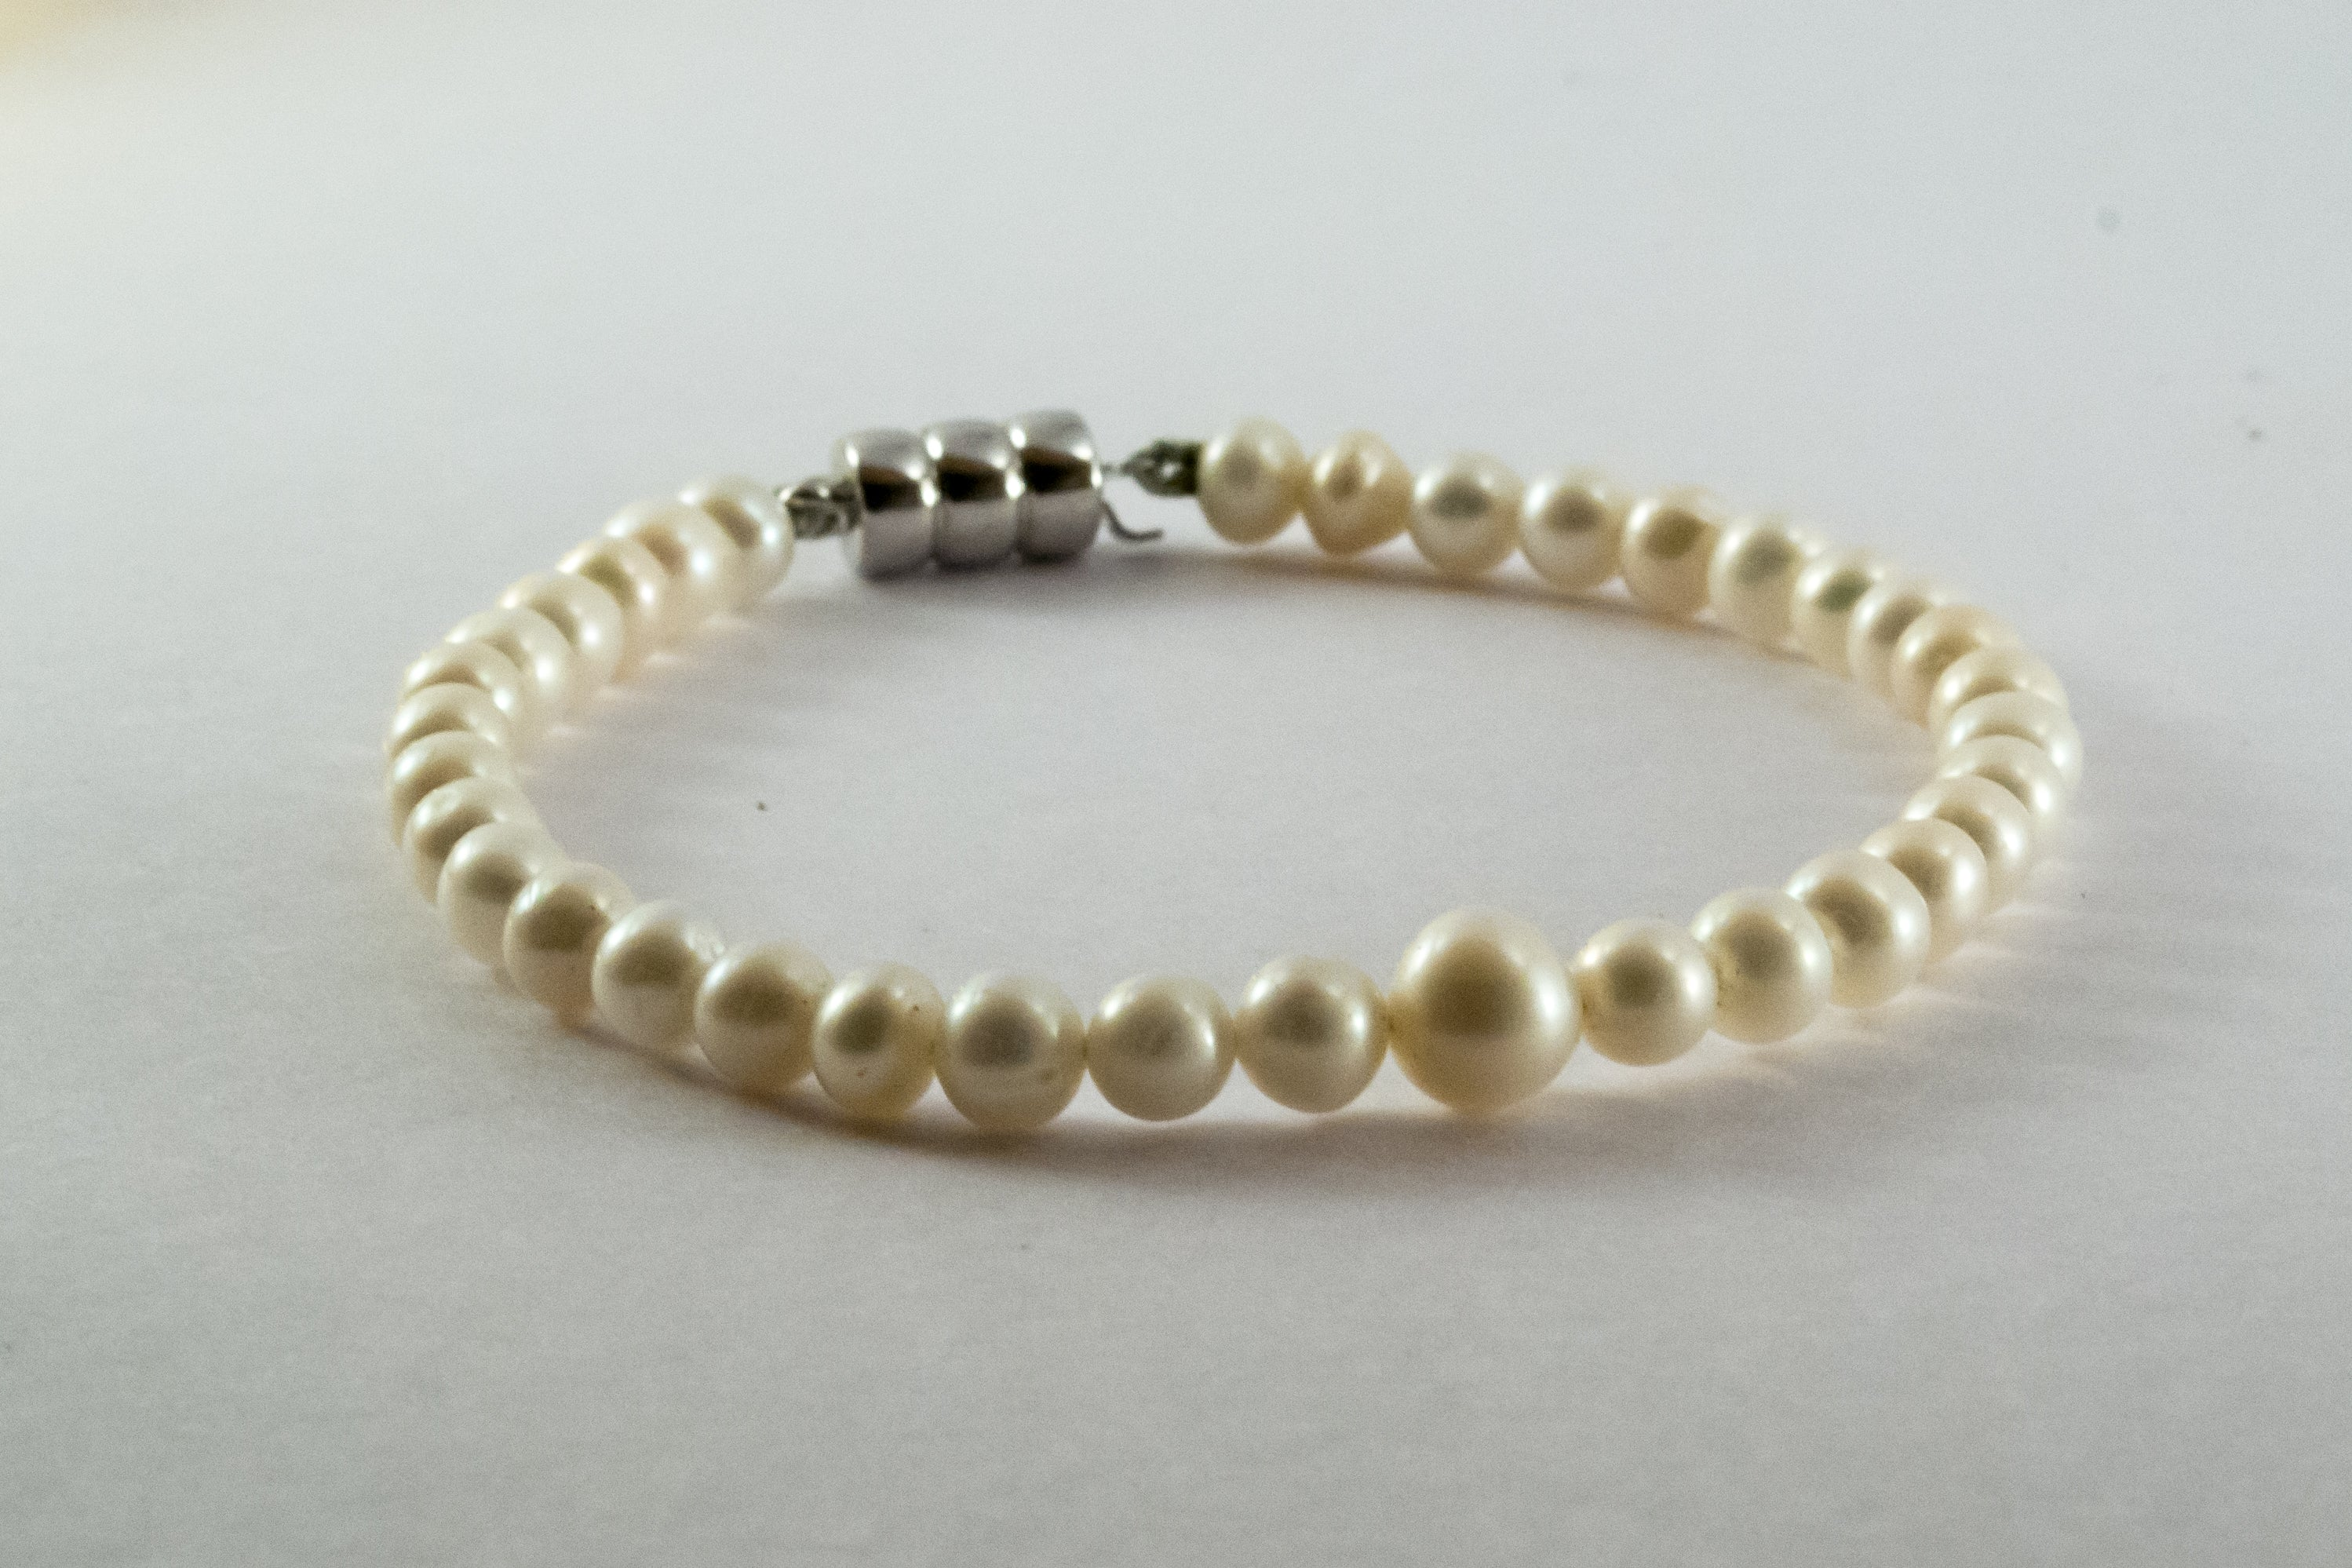 PEARL IN THE OCEAN BRACELET